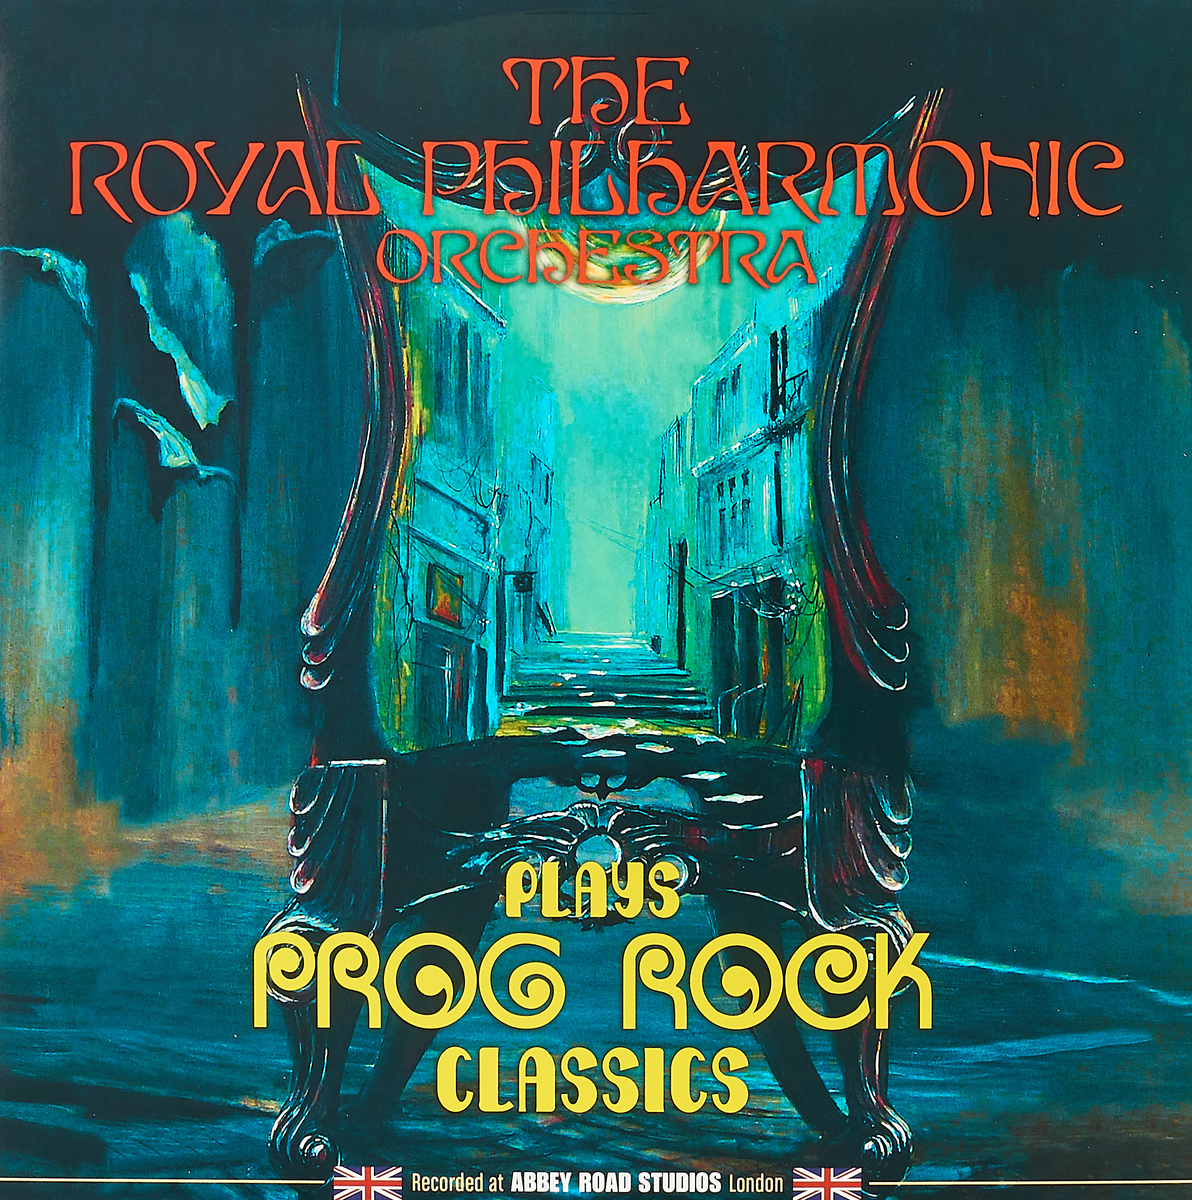 The Royal Philharmonic Orchestra The Royal Philharmonic Orchestra. Plays Prog Rock Classics (LP) игорь стравинский igor stravinsky czech philharmonic orchestra conductor karel ancerl le sacre du printemps the rite of spring lp